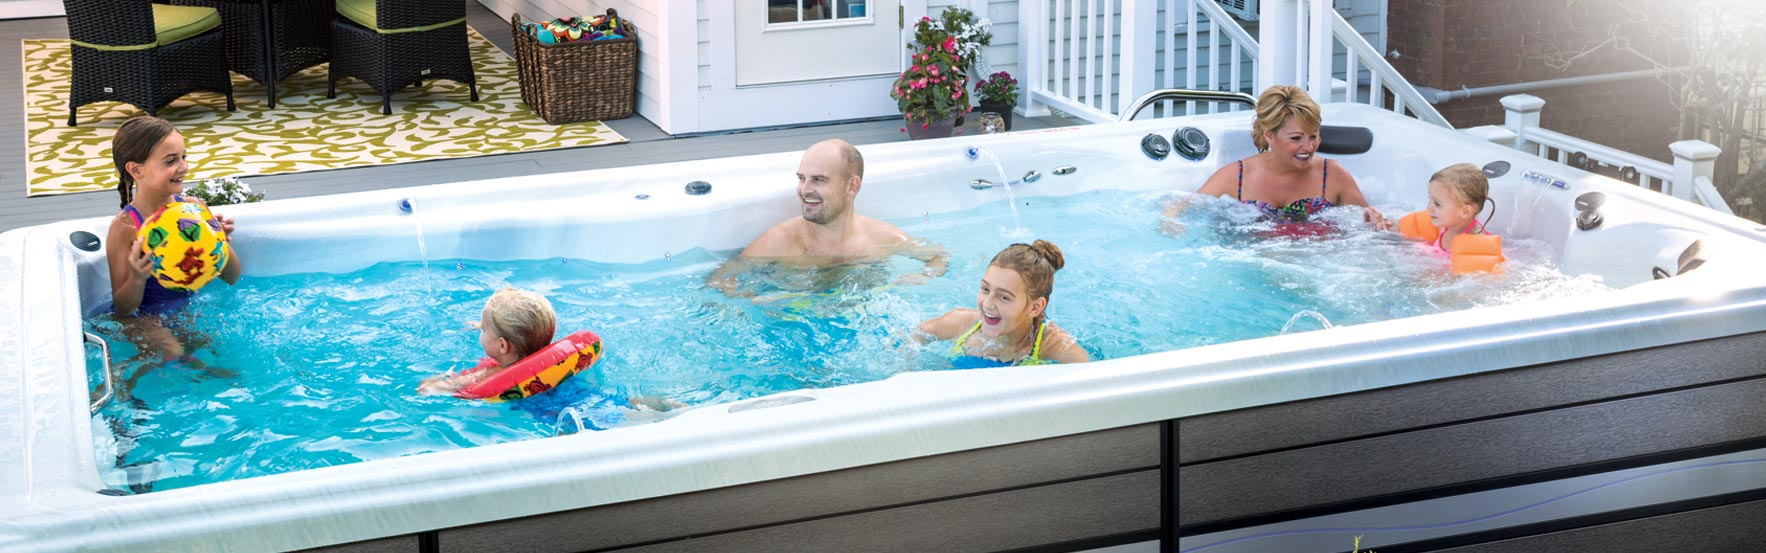 get pricing on an h2x swim spa